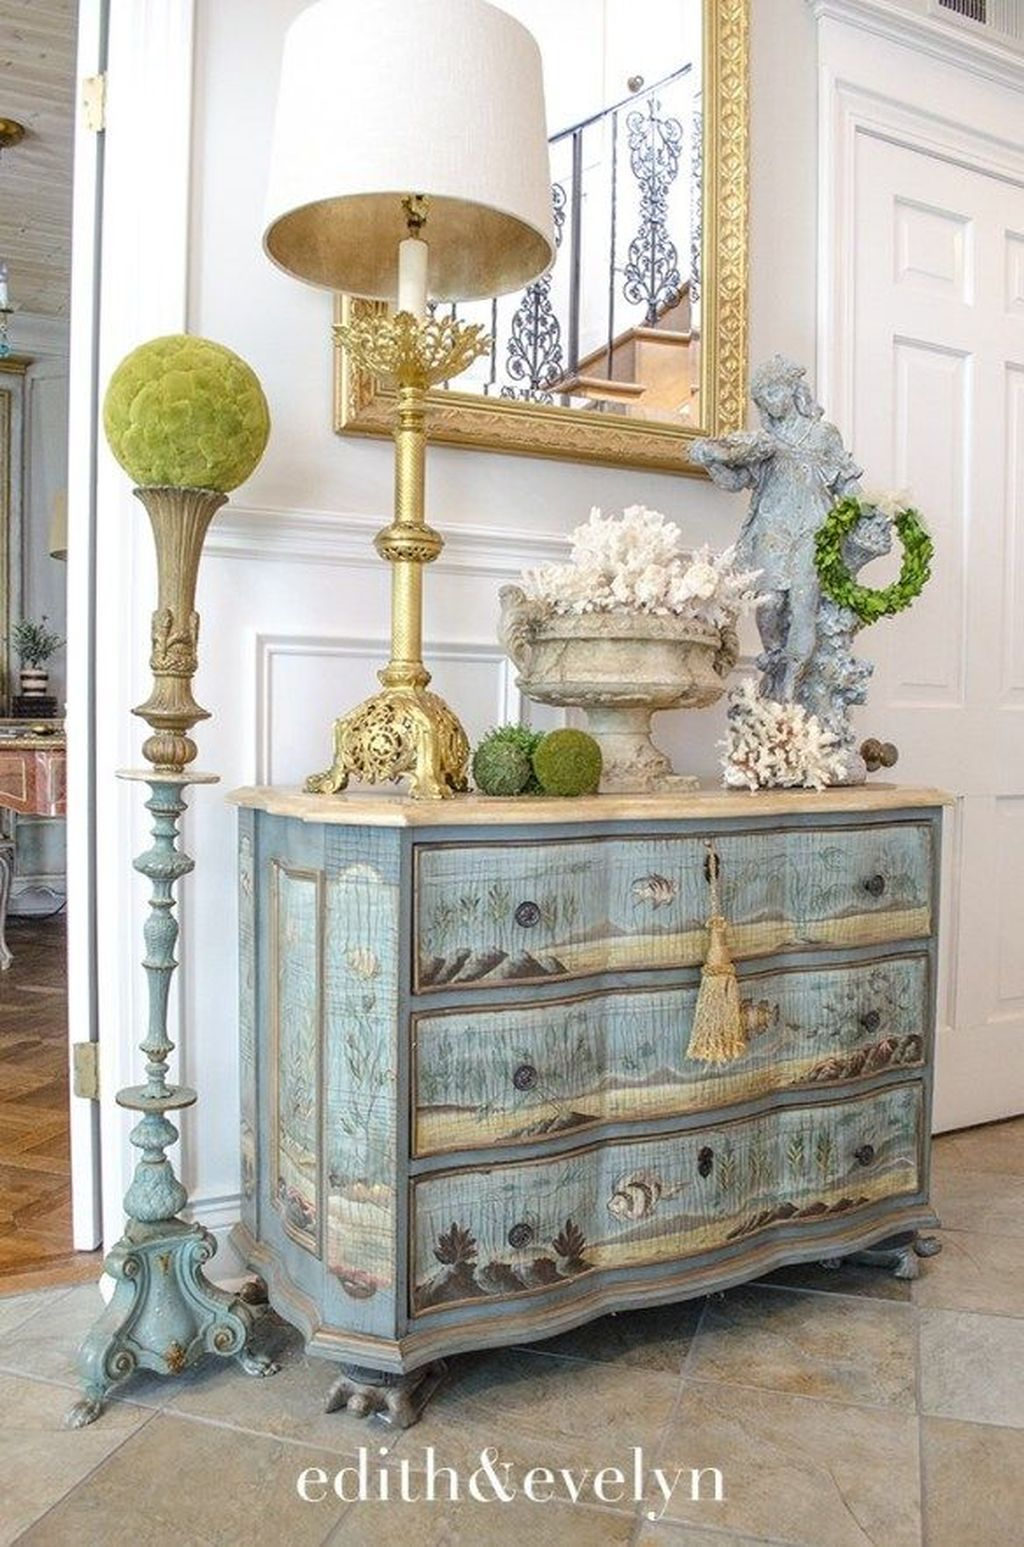 Gorgeous Summer Decor Ideas To Upgrade Your Home Comfortable03